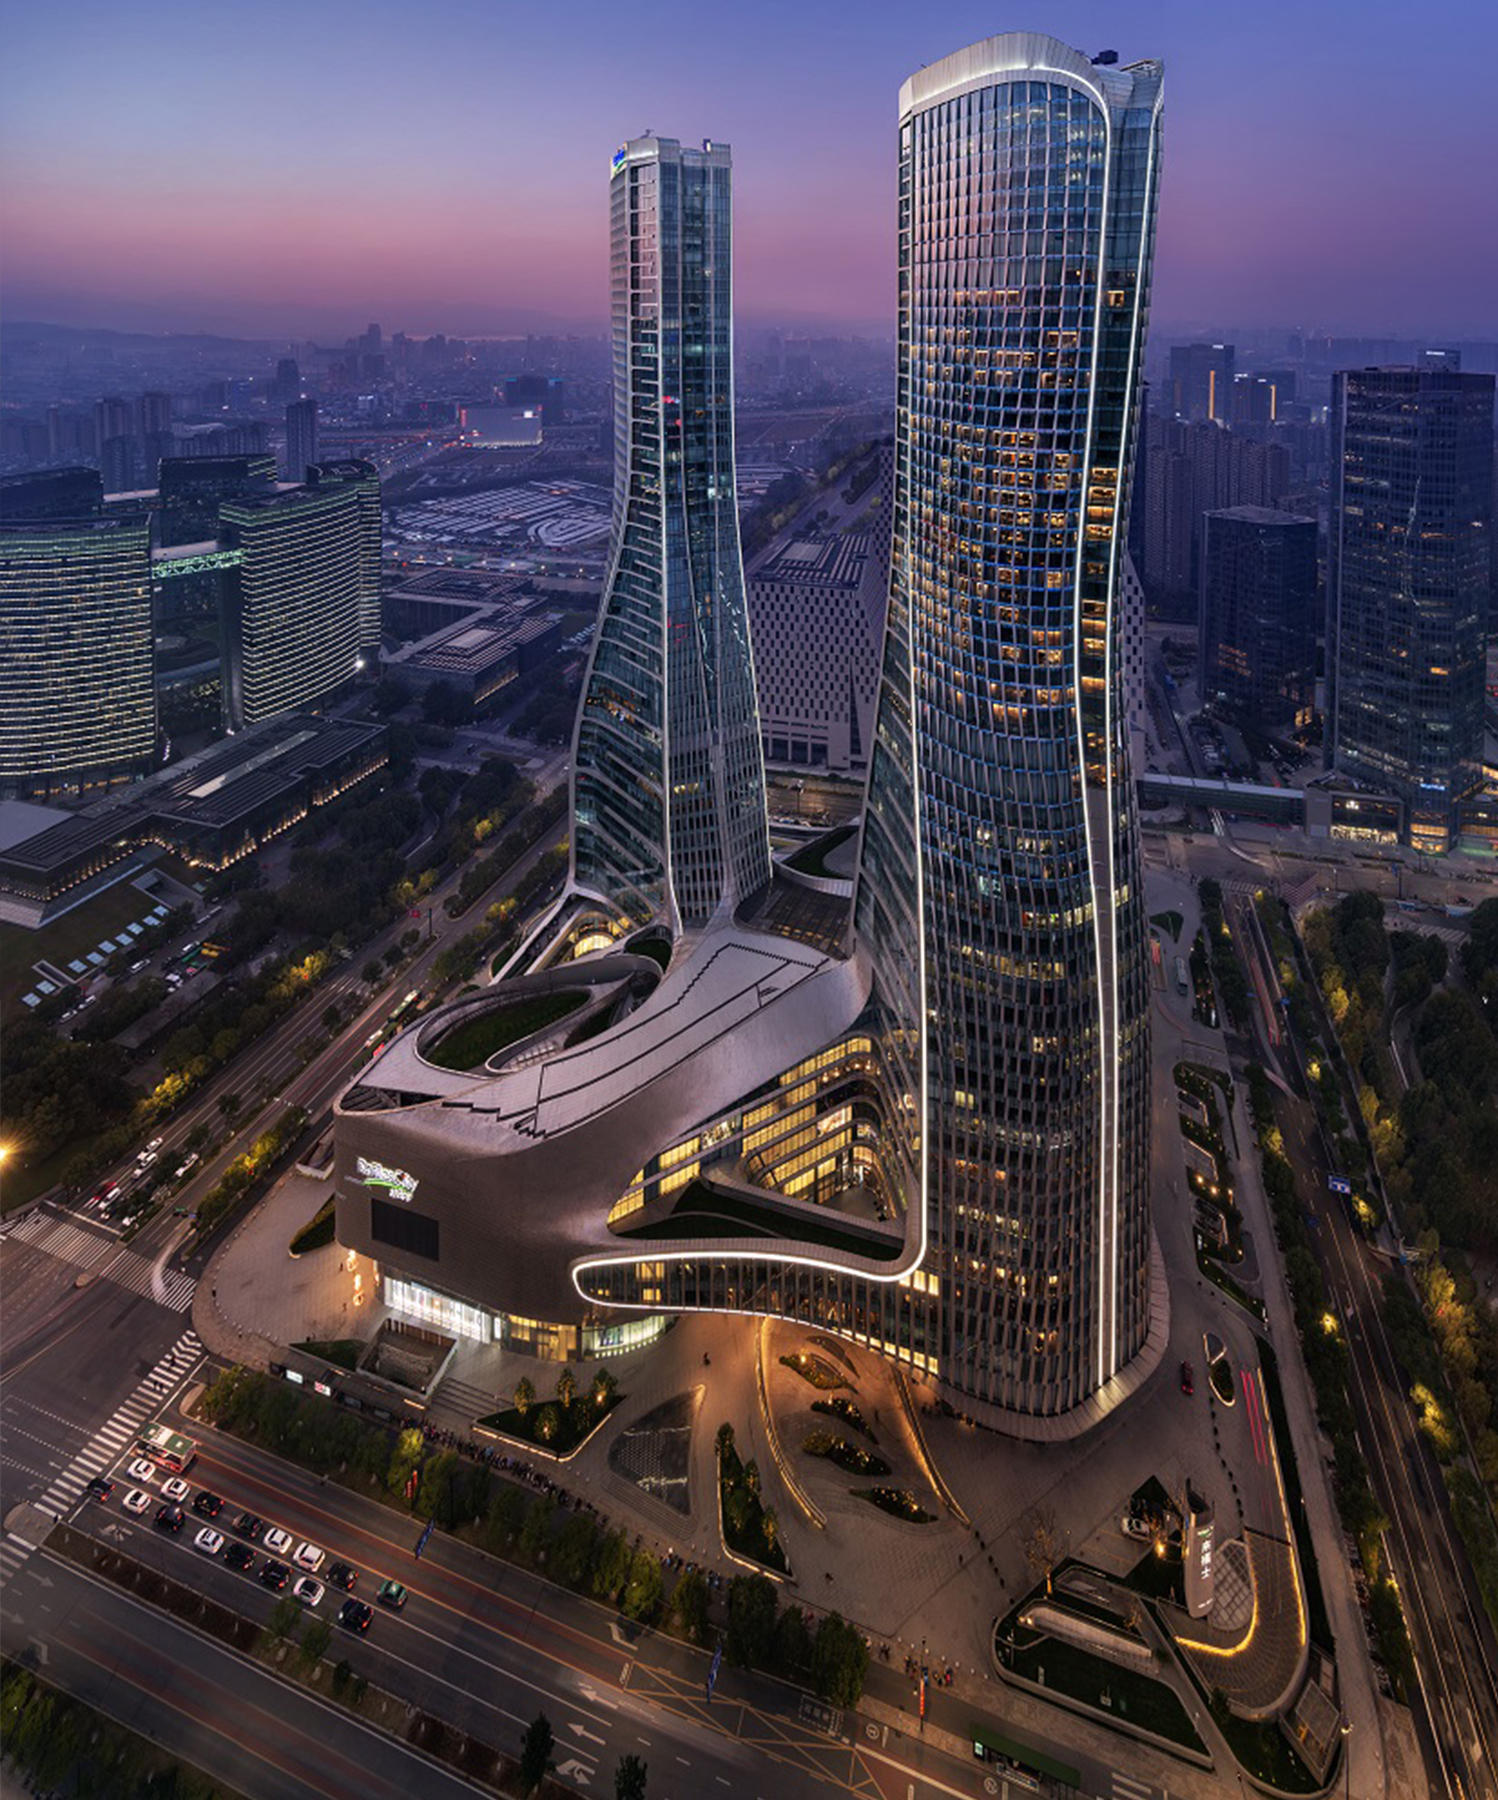 Designed by Dutch architect UN Studio, the hotel has two distinct towers, each soaring 50 stories high.